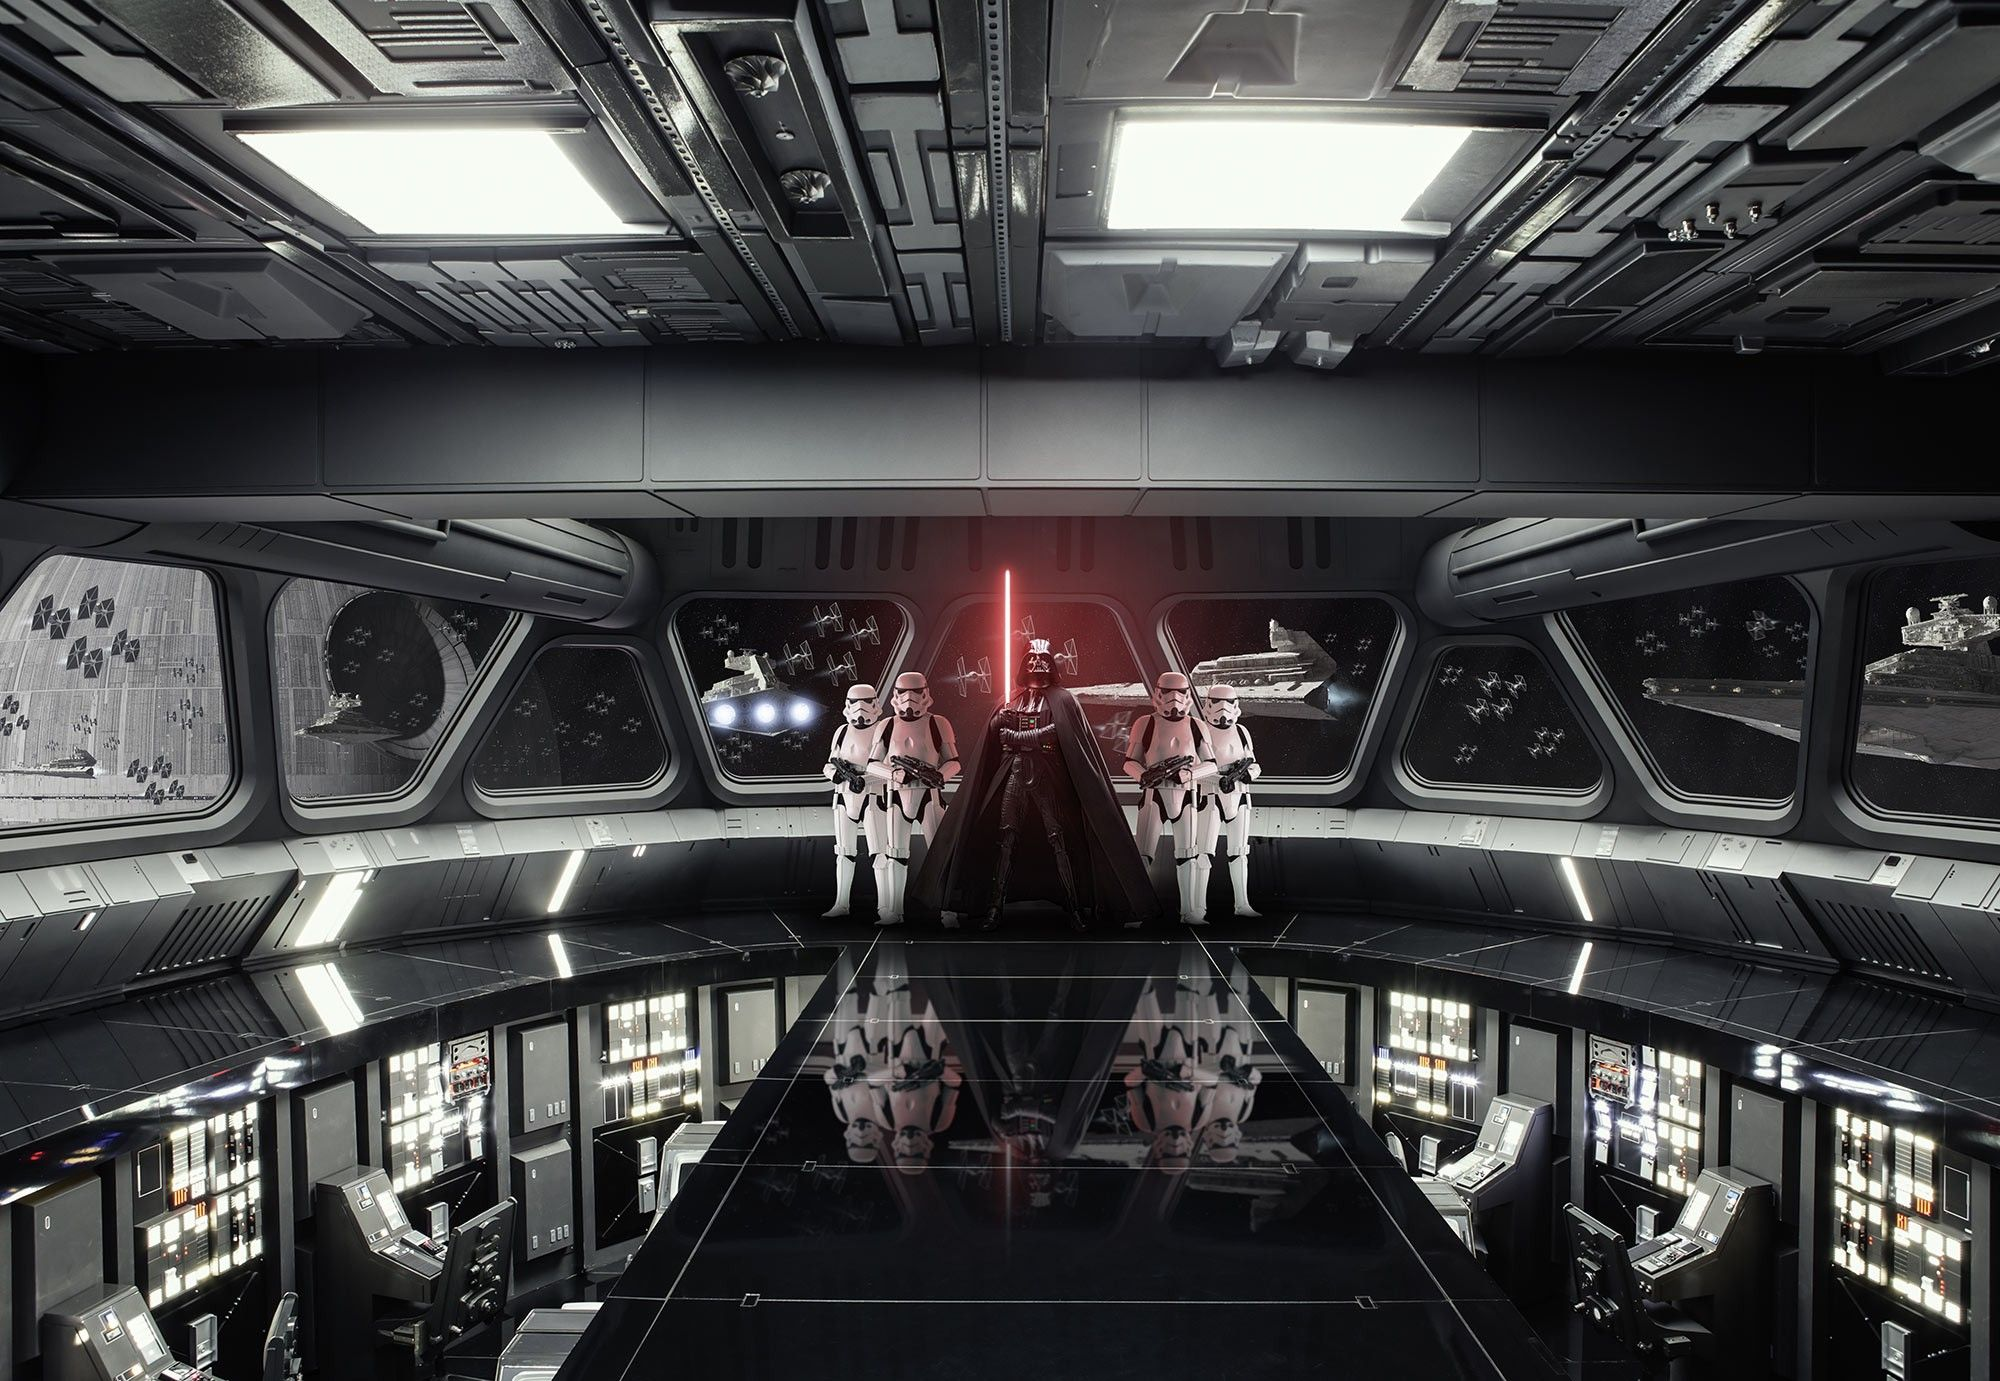 Star Wars Destroyer Deck Wall Mural Wallpaper Buy It Now